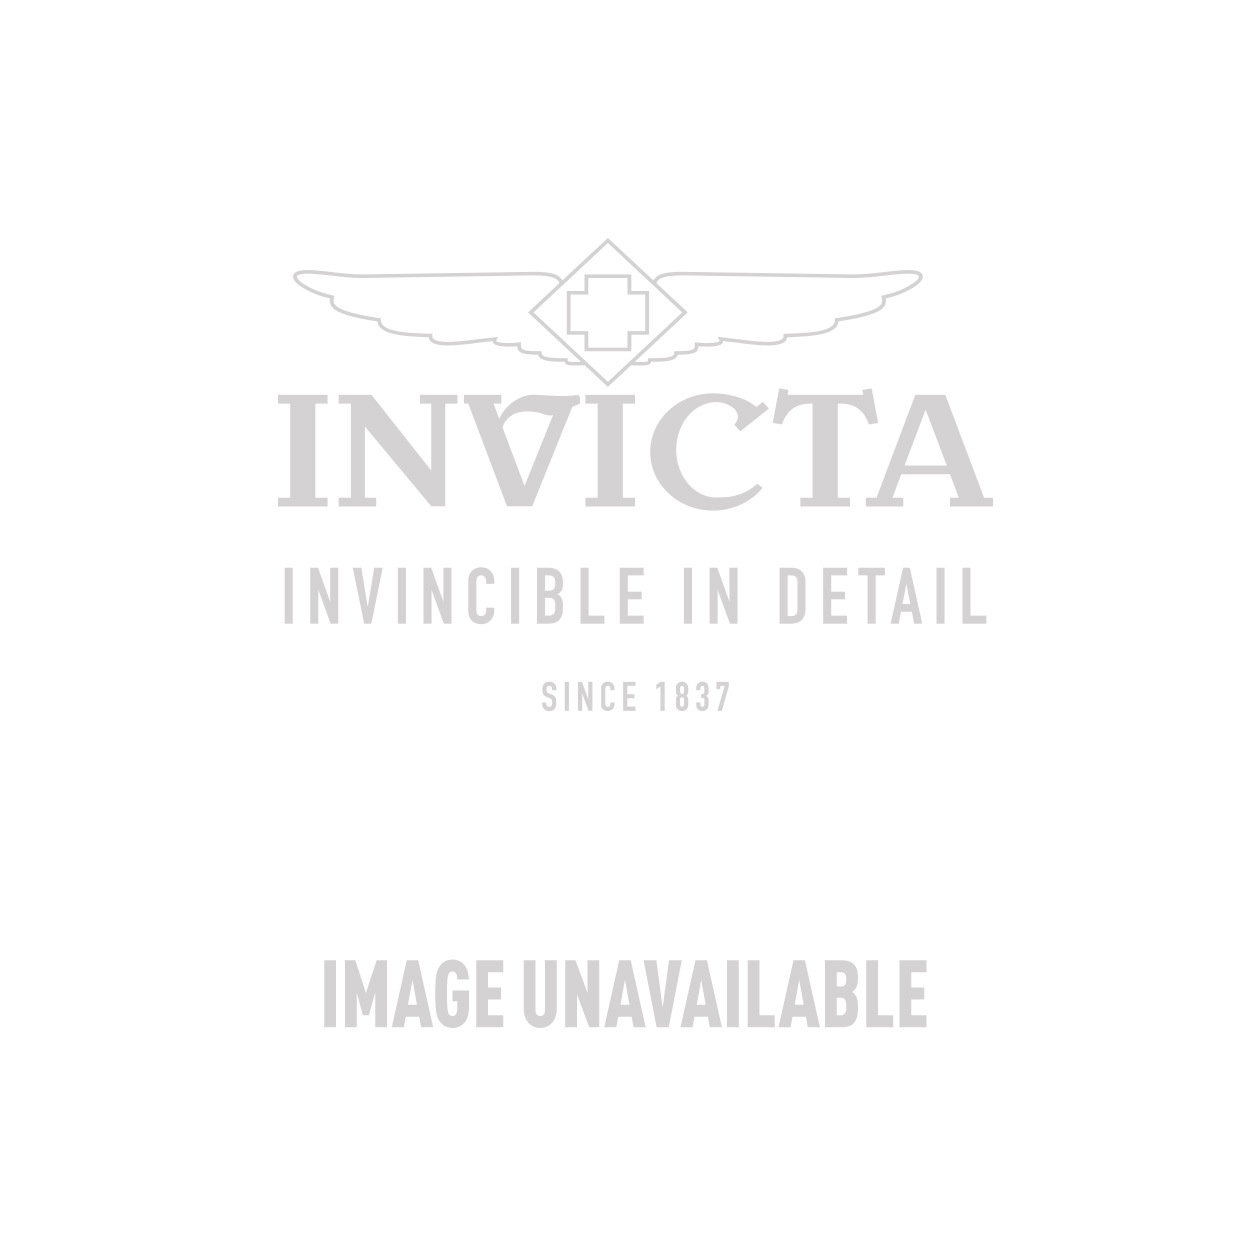 Invicta Specialty Quartz Watch - Stainless Steel case Stainless Steel band - Model 18668